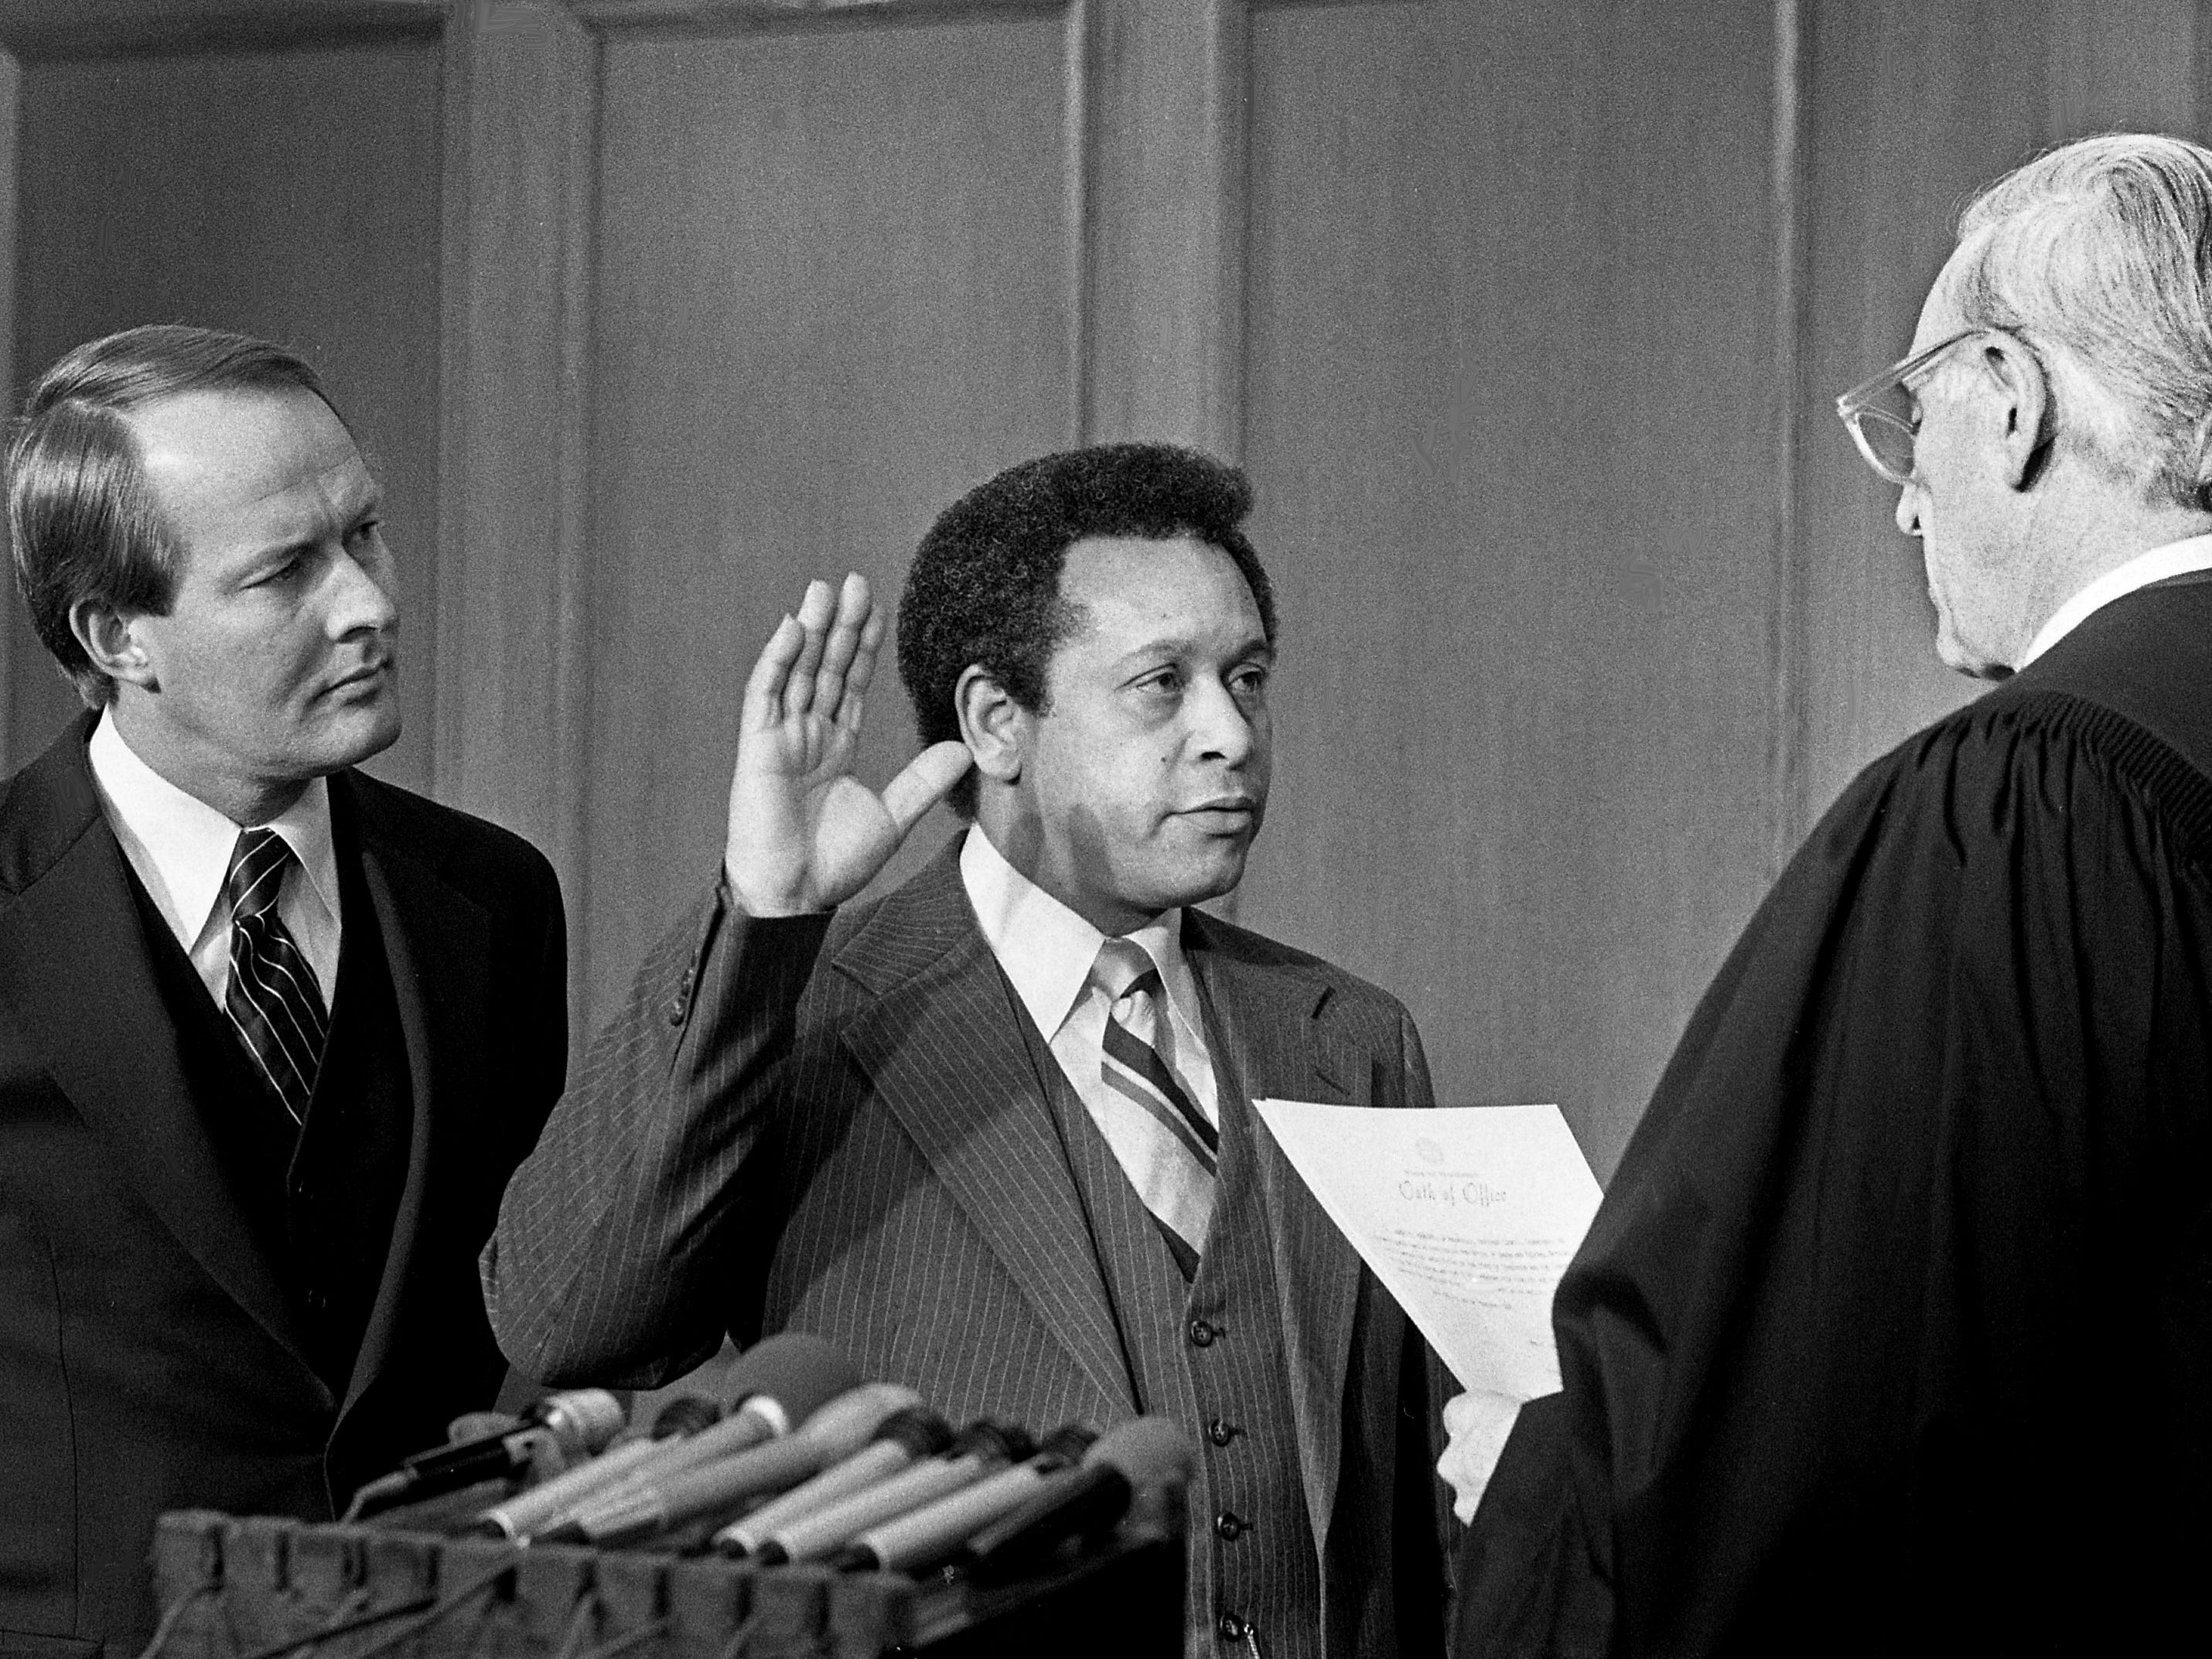 Metro Councilman Jimmy Hawkins, center, is sworn in as director of the state Office of Urban and Federal Affairs by Judge Henry F. Todd, right, as new Gov. Lamar Alexander looks on at the state Capitol on Feb. 7, 1979.